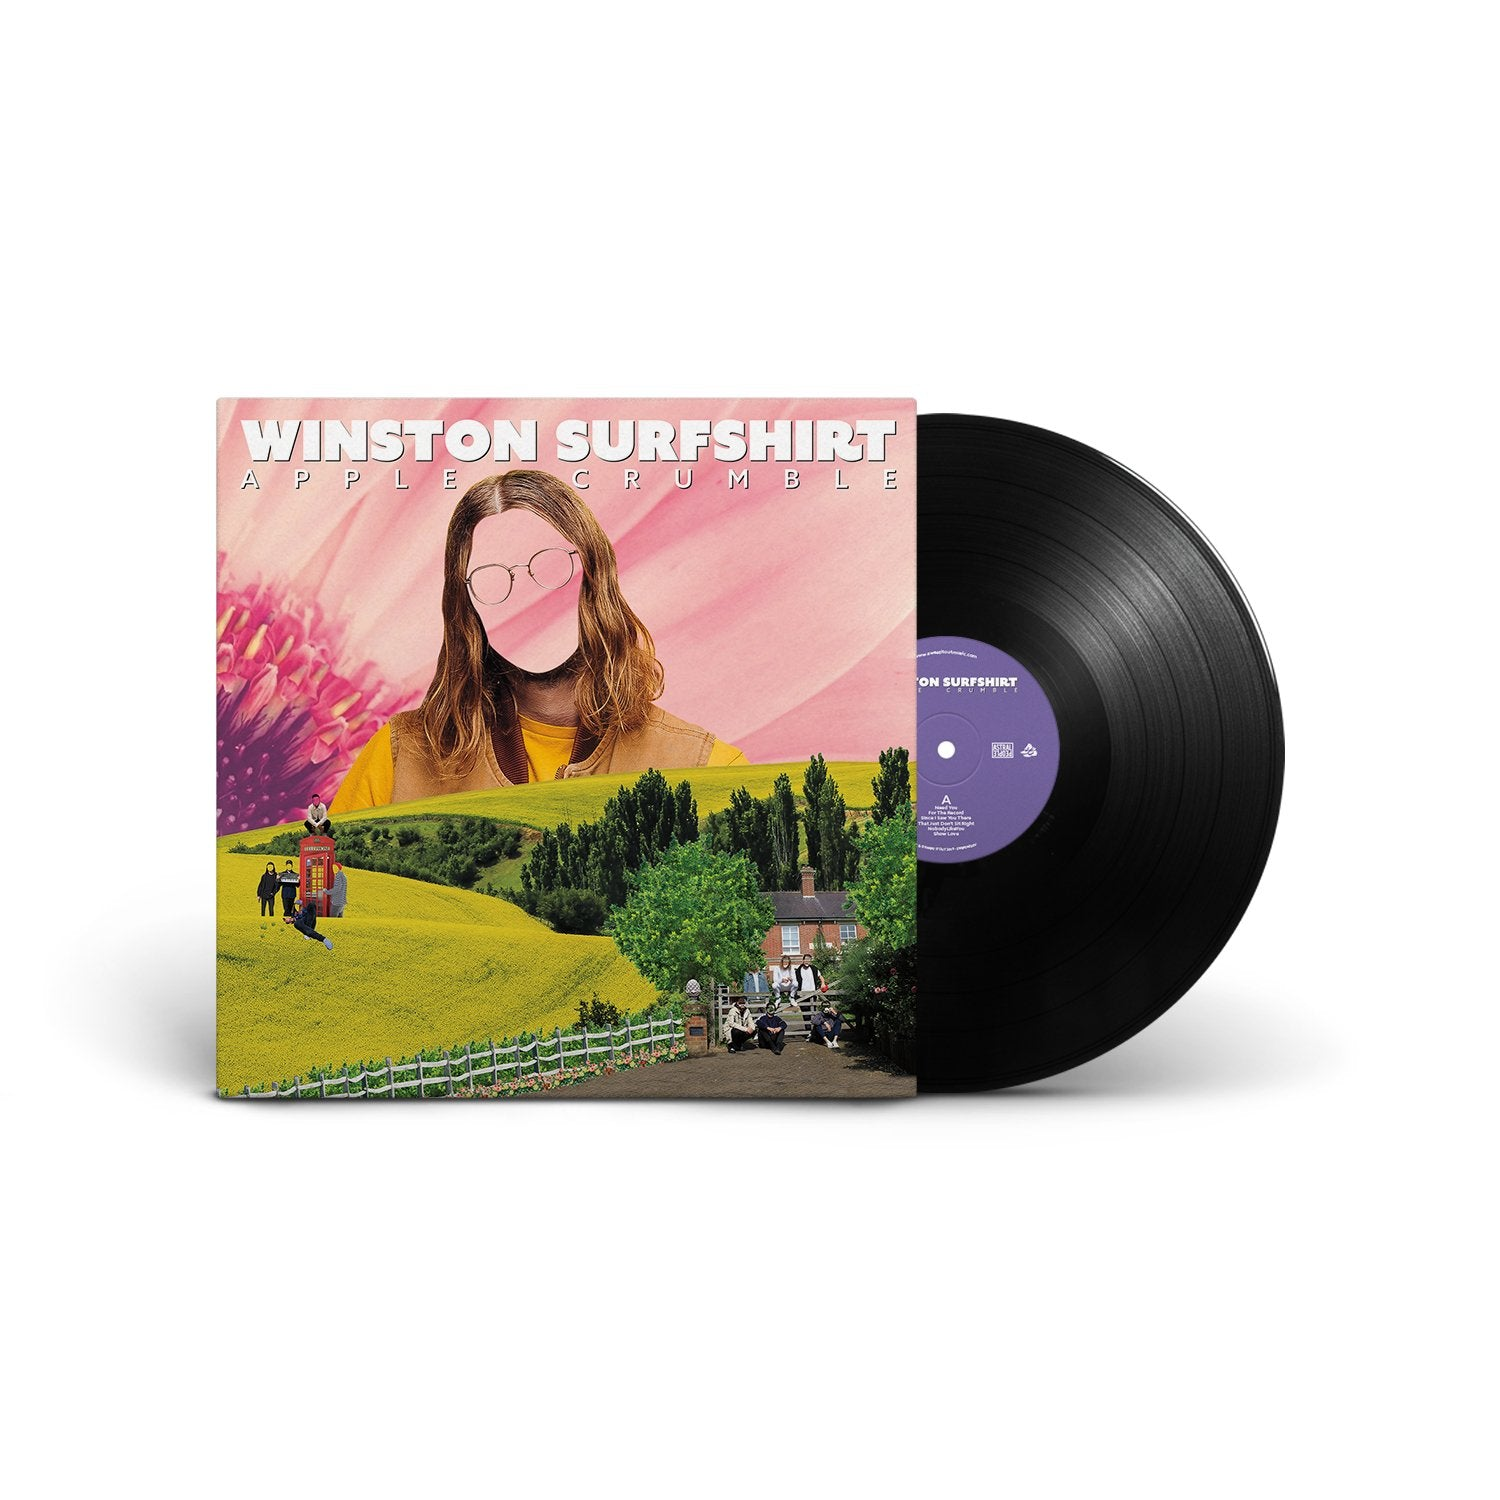 Winston Surfshirt - Apple Crumble Vinyl